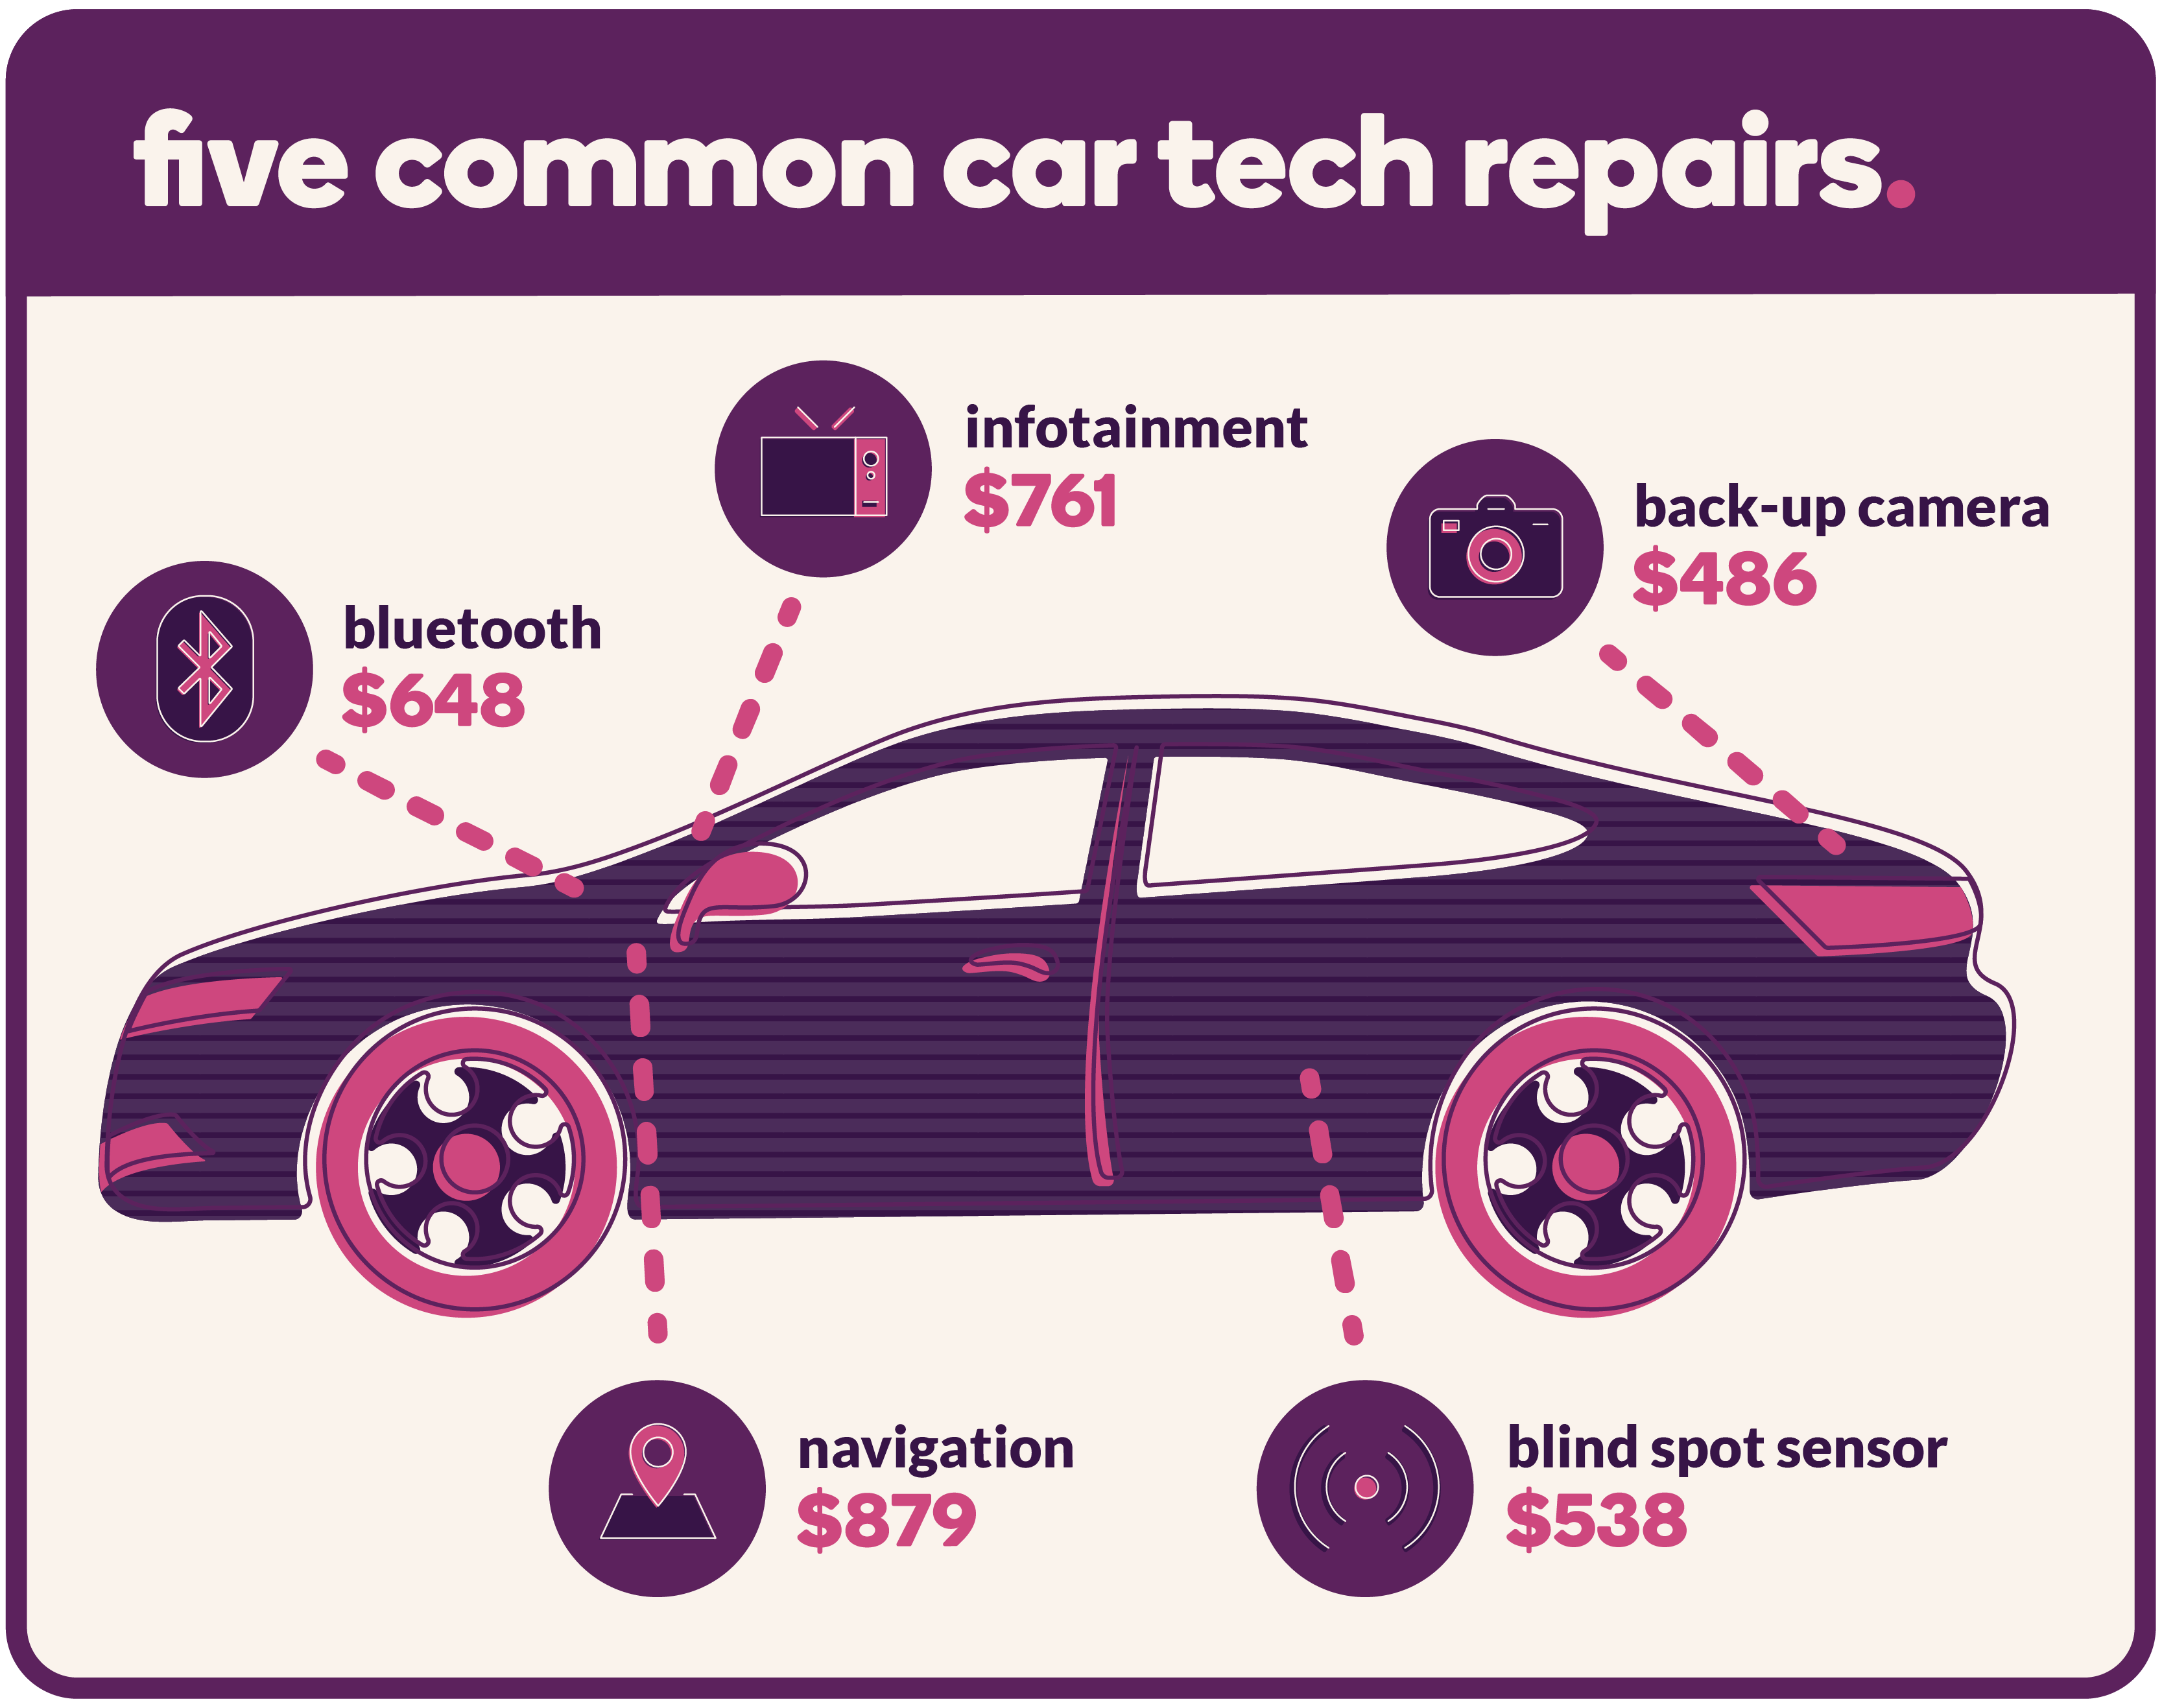 Five common car tech repairs: Infotainment ($761), Back-up Camera ($486), Blind Spot Sensor ($538), Navigation ($879), Bluetooth ($648)